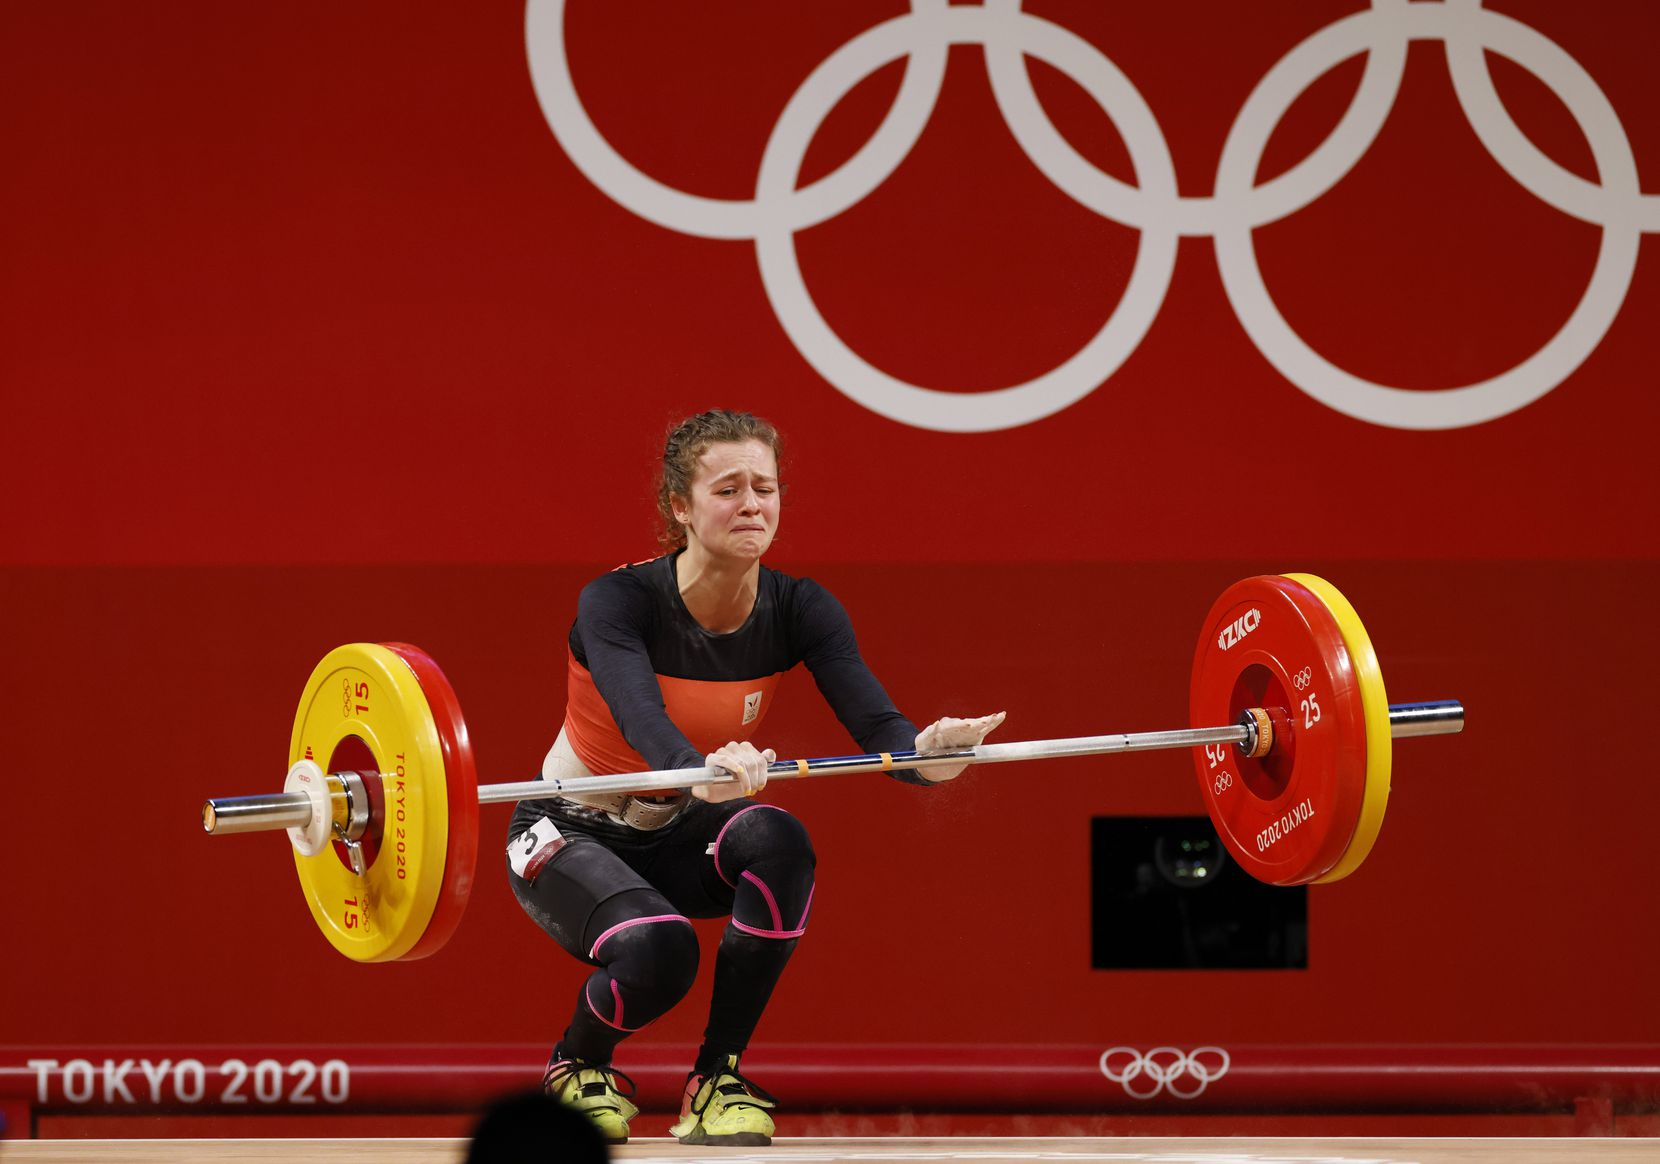 Belgium's Nina Sterckx dejected after an unsuccessful third attempt in the clean and jerk round of 101kg during the women's 49 kg group A weightlifting during the postponed 2020 Tokyo Olympics at Tokyo International Forum on Saturday, July 24, 2021, in Tokyo, Japan. (Vernon Bryant/The Dallas Morning News)